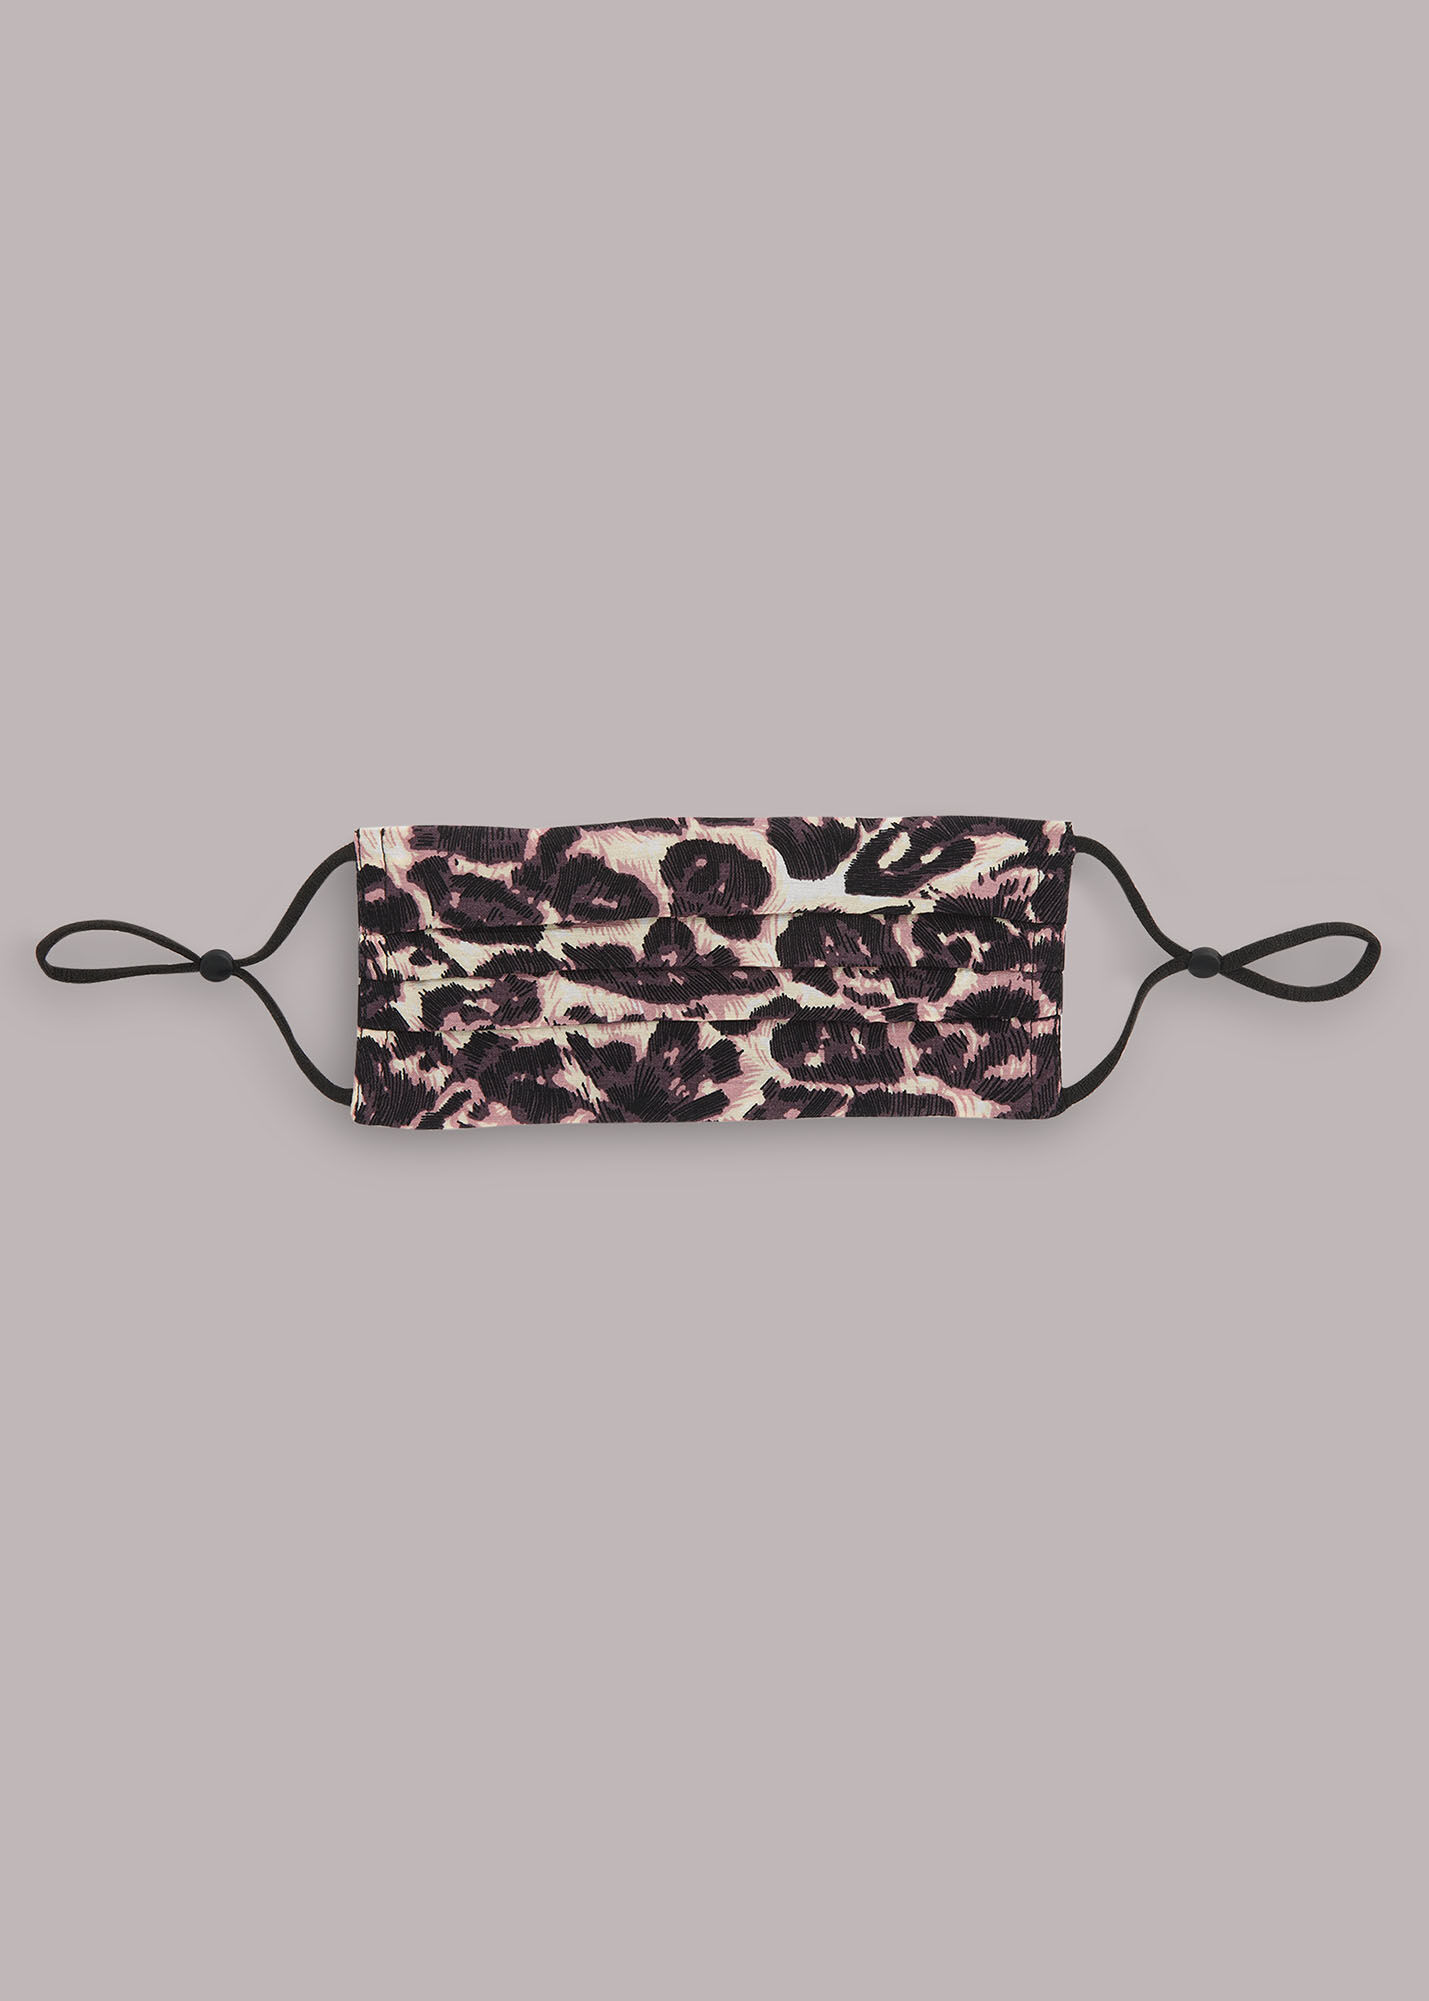 Whistles Women Clouded Leopard Face Covering